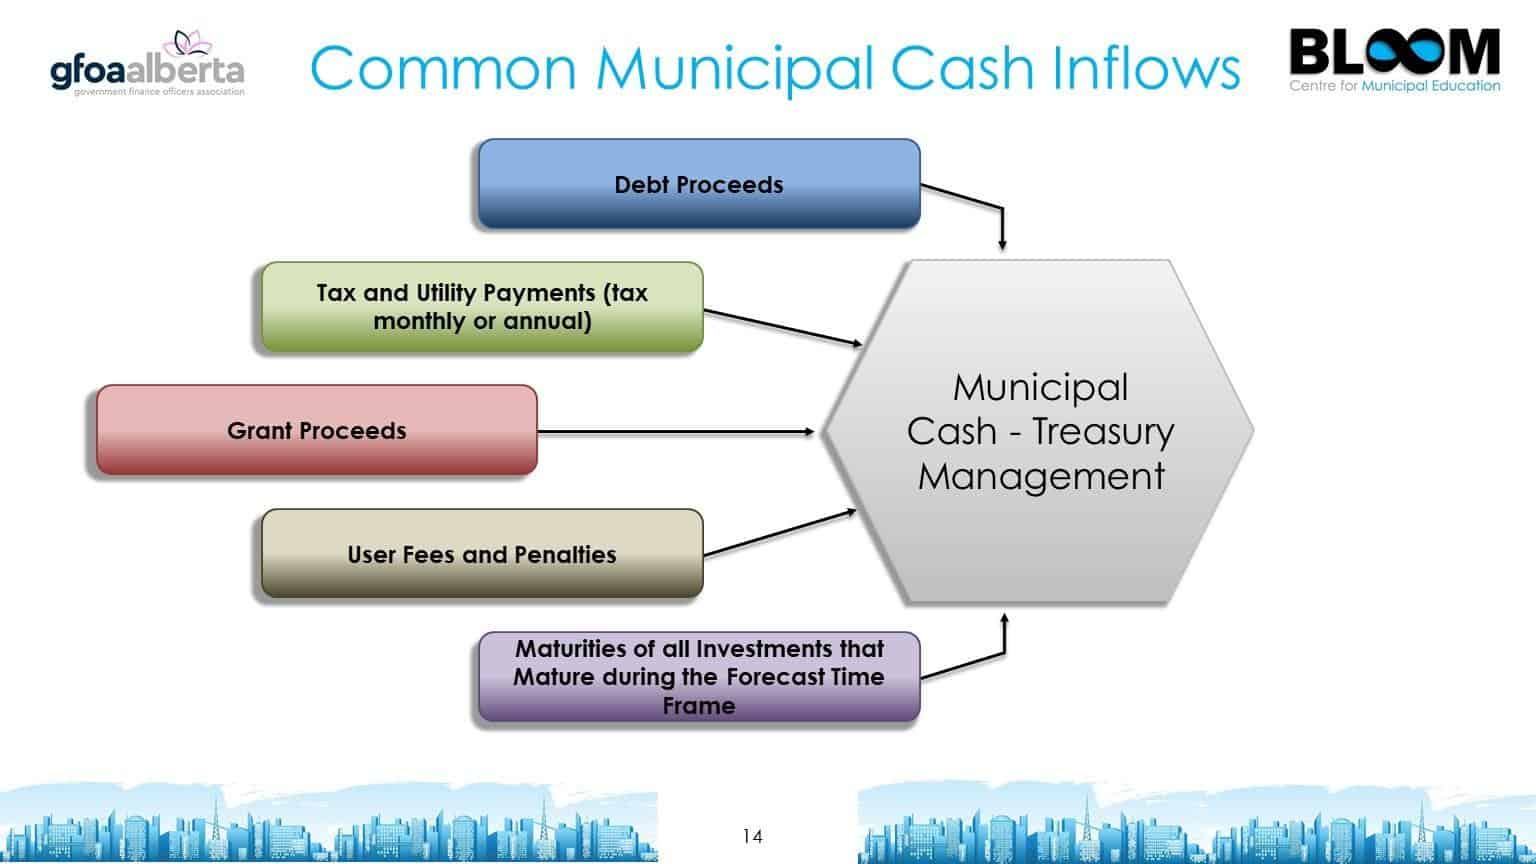 Common Municipal Cash Inflows